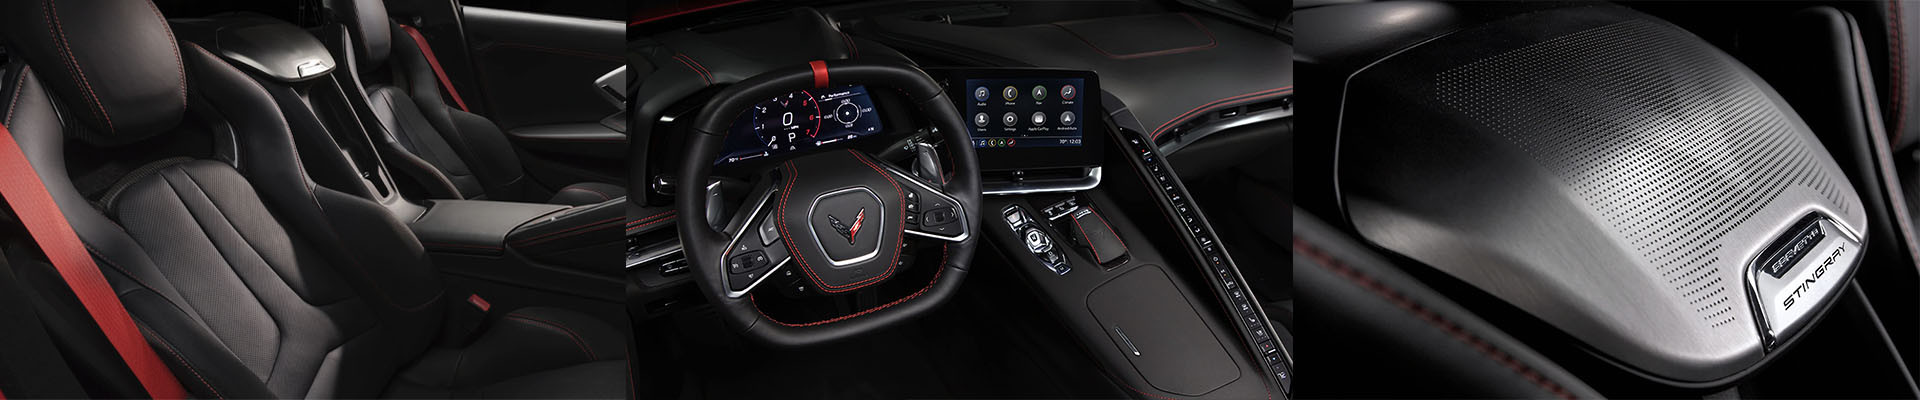 2020 Chevrolette Corvette interior